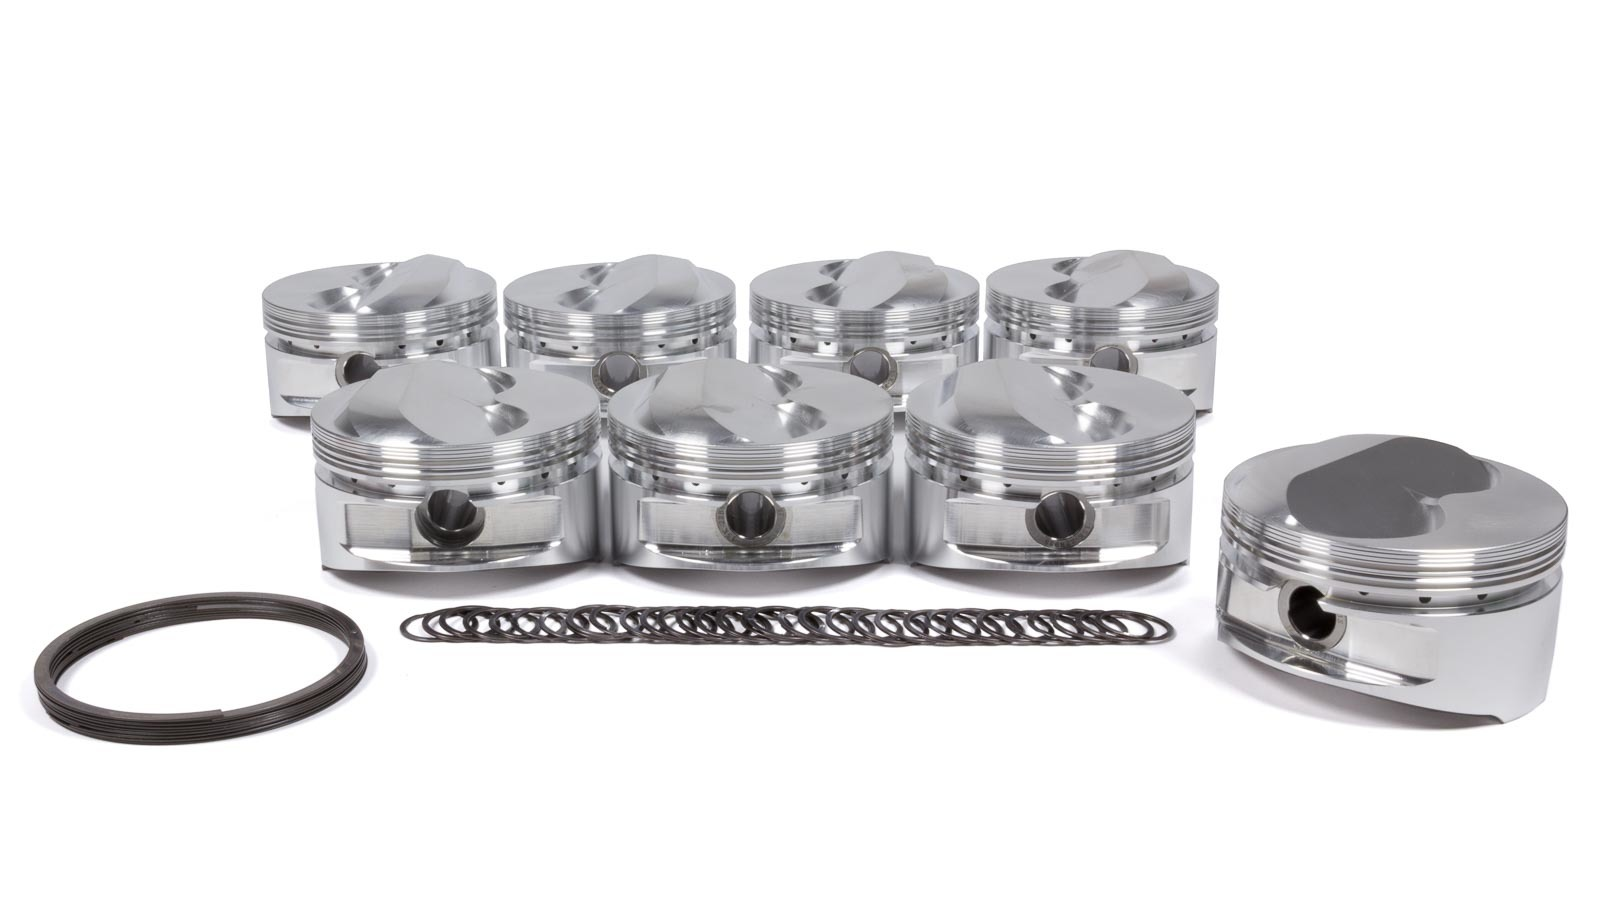 JE Pistons 182006 Piston, Small Block Dome, Forged, 4.040 in Bore, 1/16 x 1/16 x 3/16 in Ring Grooves, Plus 11.0 cc, Small Block Chevy, Set of 8